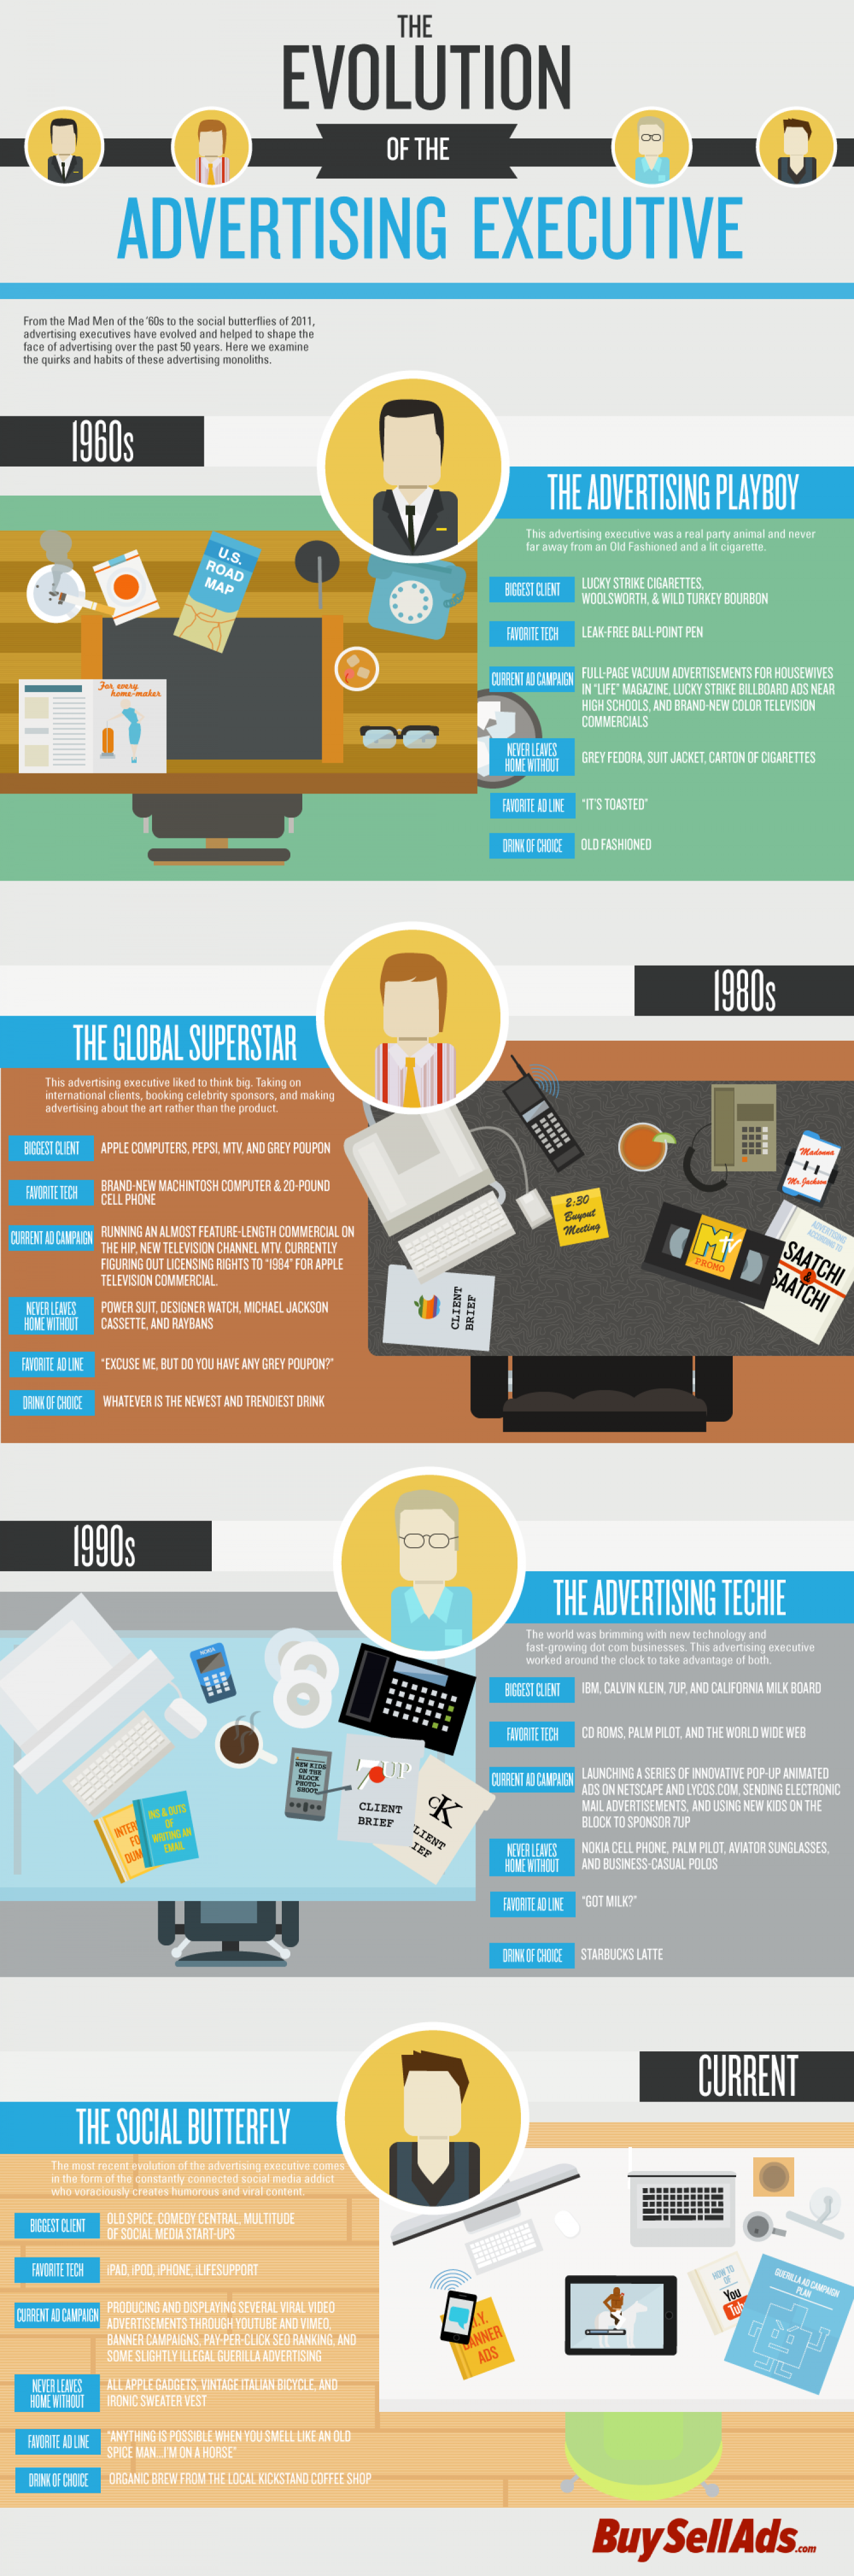 The Evolution of the Ad Executive Infographic